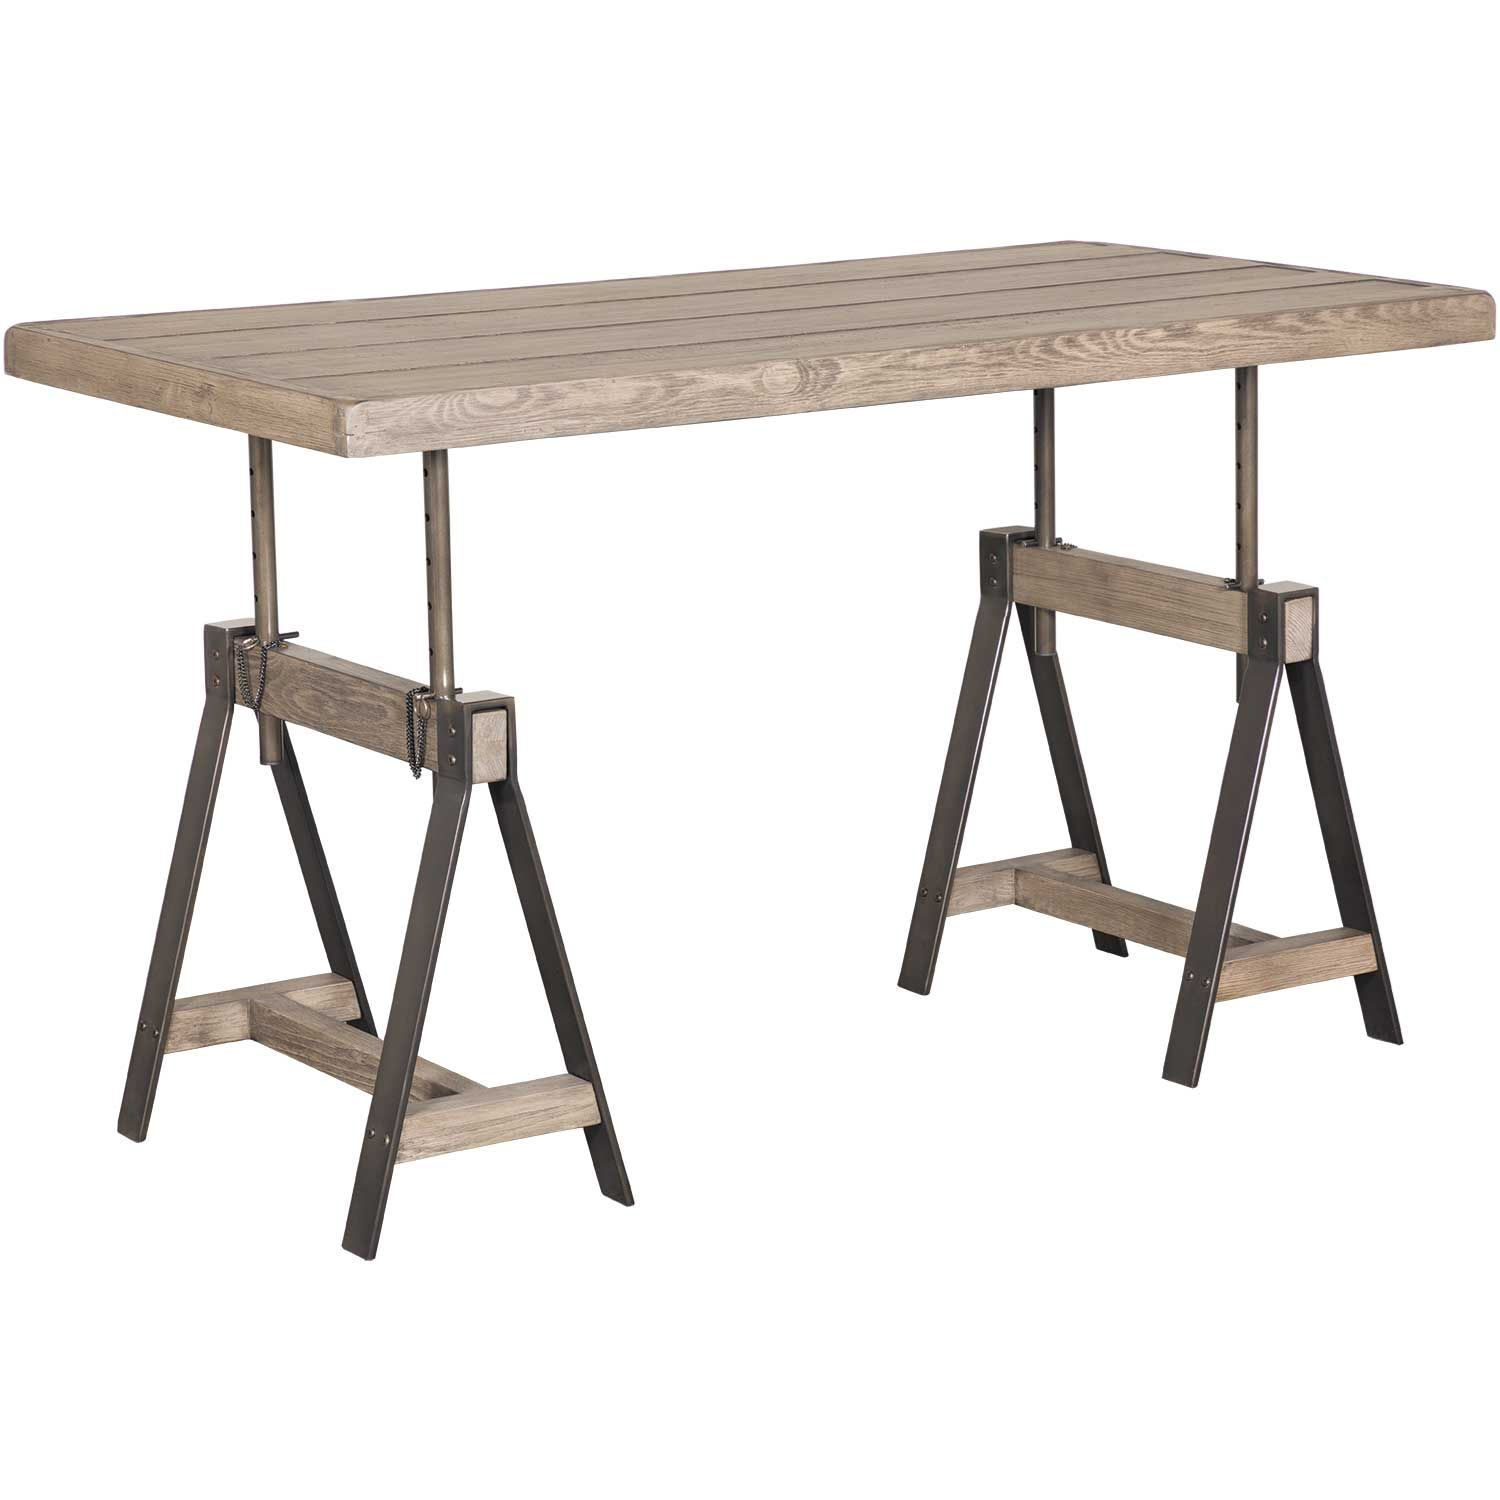 Picture of camden adjustable height table desk grey